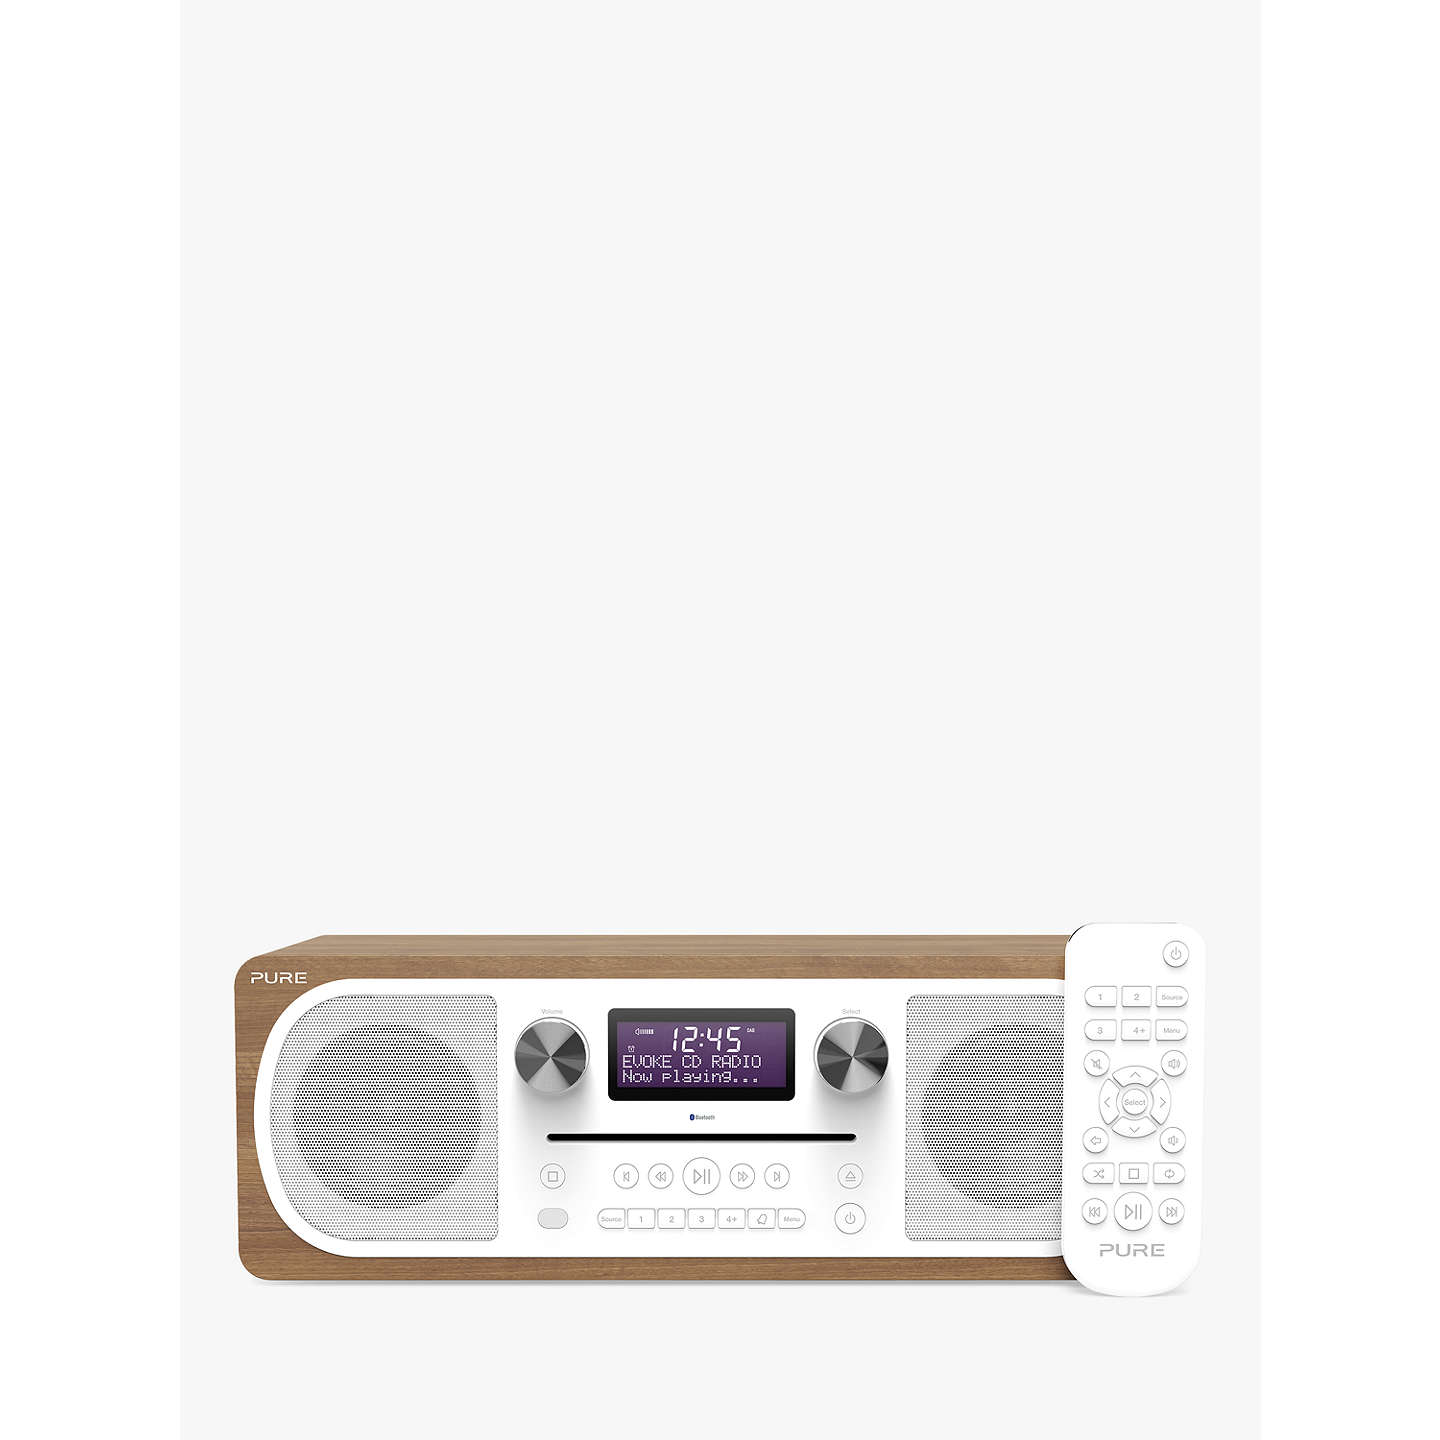 BuyPure Evoke C-D6 DAB+/FM Bluetooth Stereo All-In-One Music System With Remote Control, Walnut Online at johnlewis.com